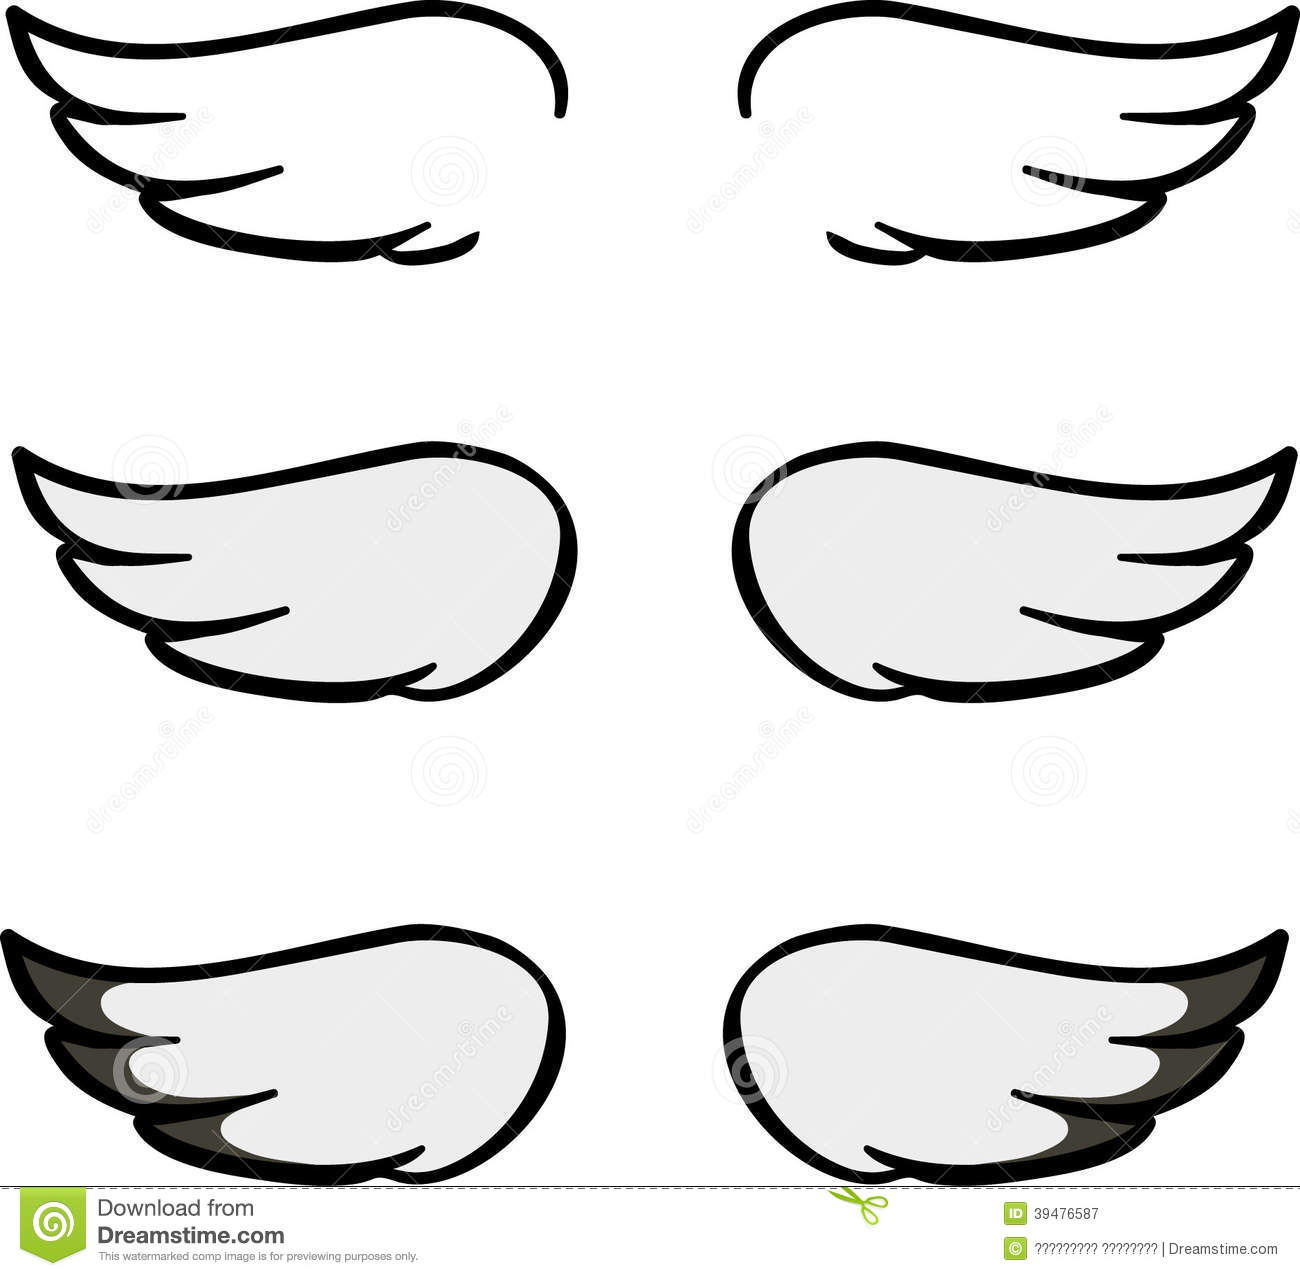 Wing clipart easy. Simple free download best